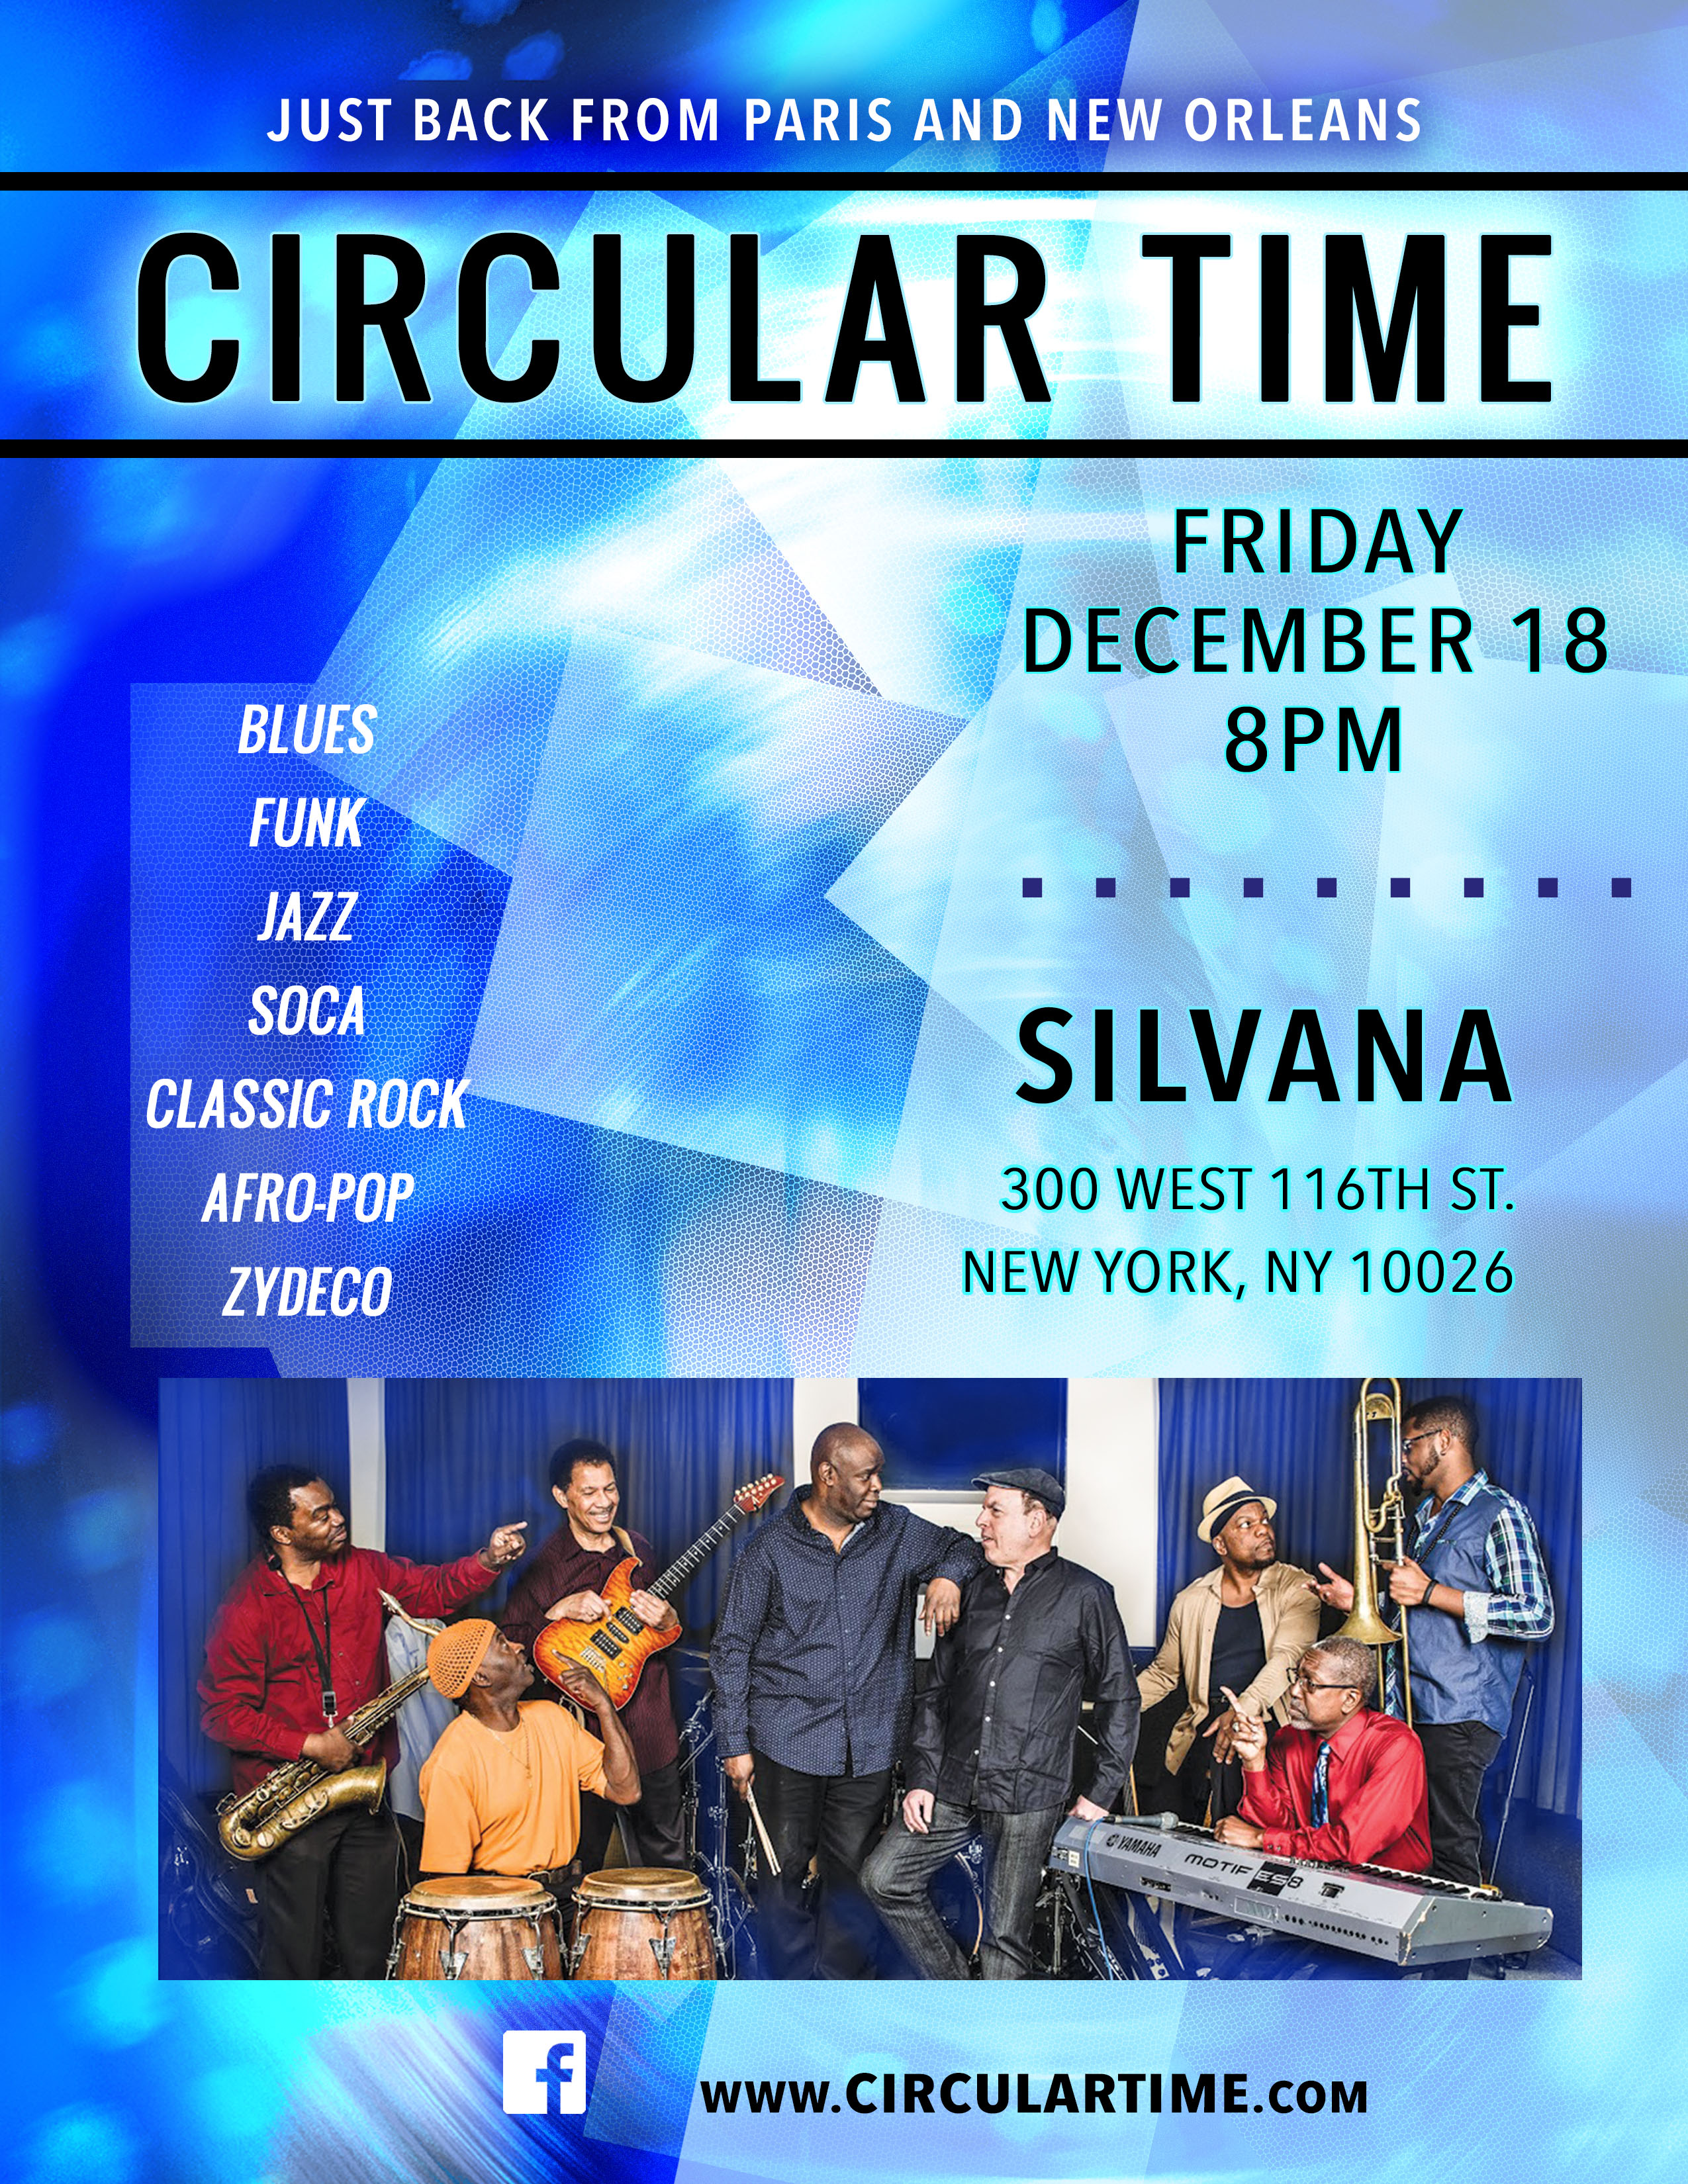 Circular Time Band, Just Back from Paris & New Orleans, in NYC, Fri., Dec. 18, 8pm, Silvana, 330 W. 116th St.